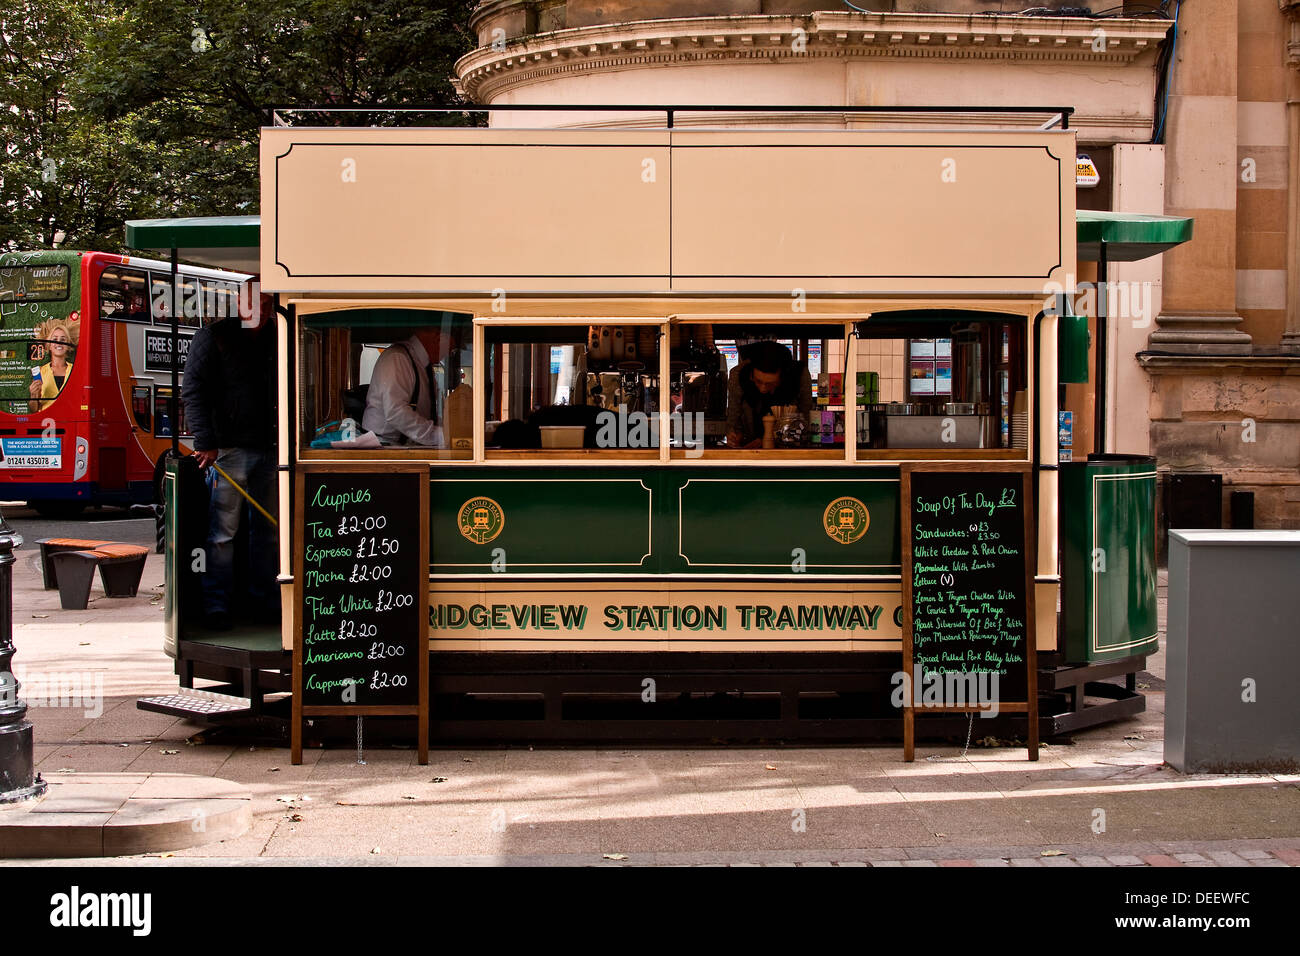 Bridgeview Station Tramway Co. Ltd Tram car outside the is a small take away outlet catering for the people in Dundee, Stock Photo